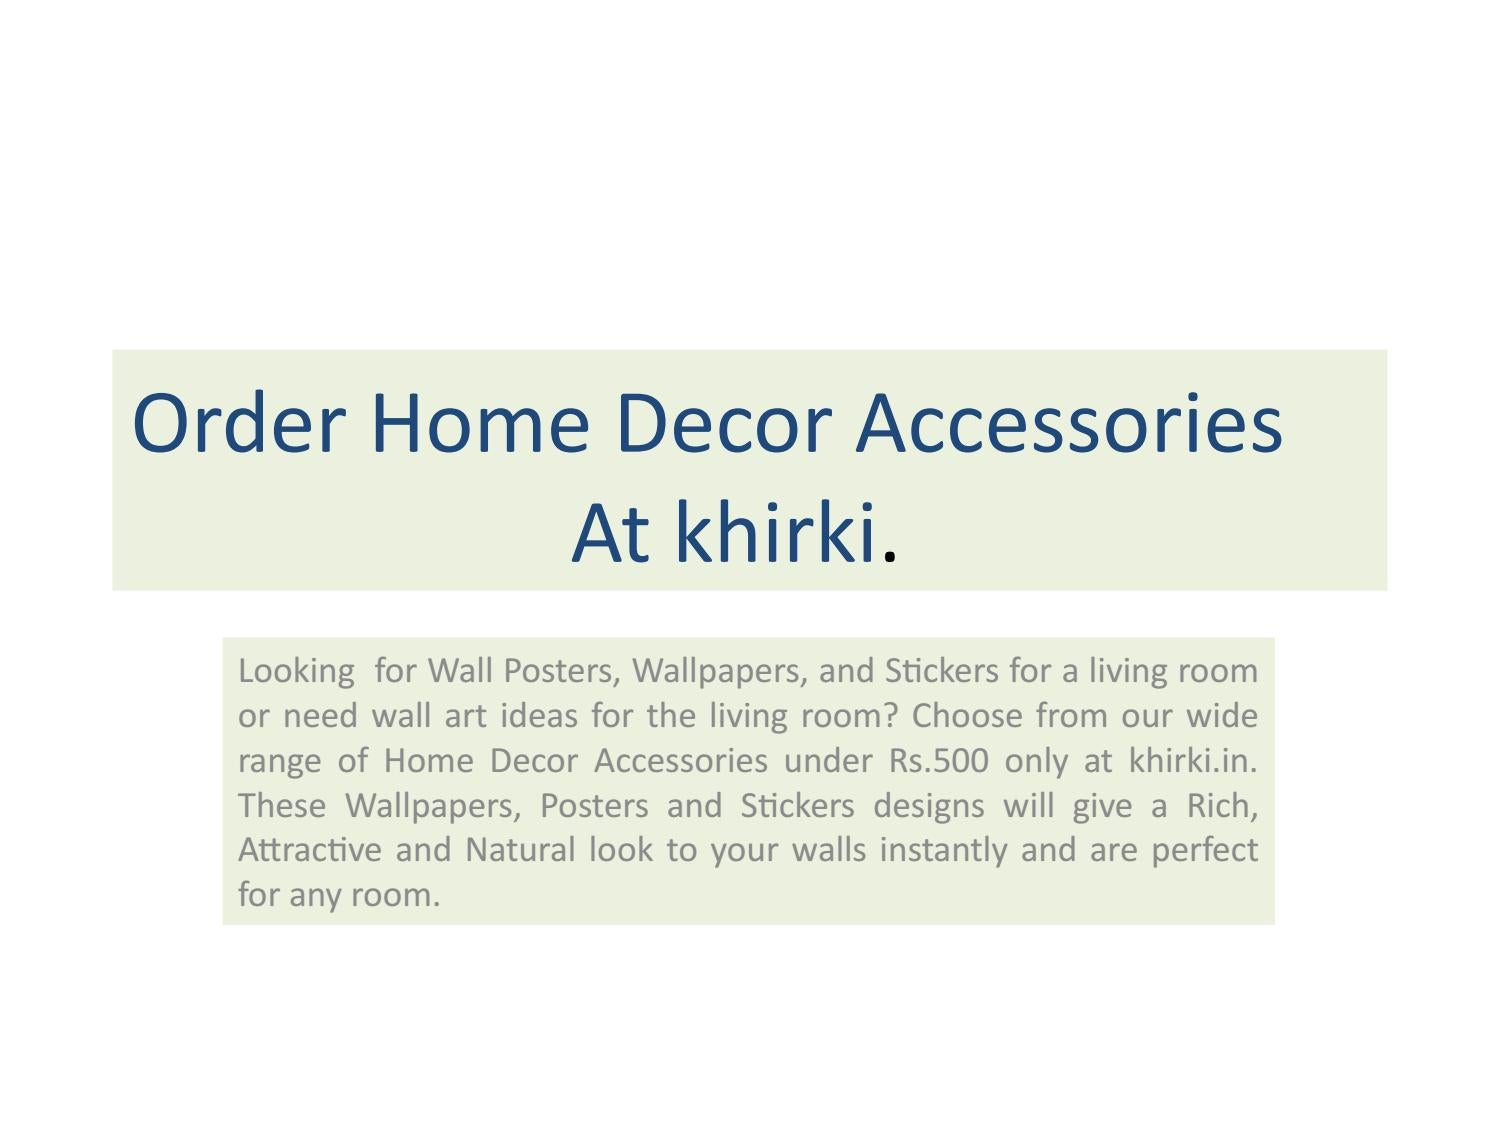 Order Home Decor Accessories At Khirki By Khirki Issuu